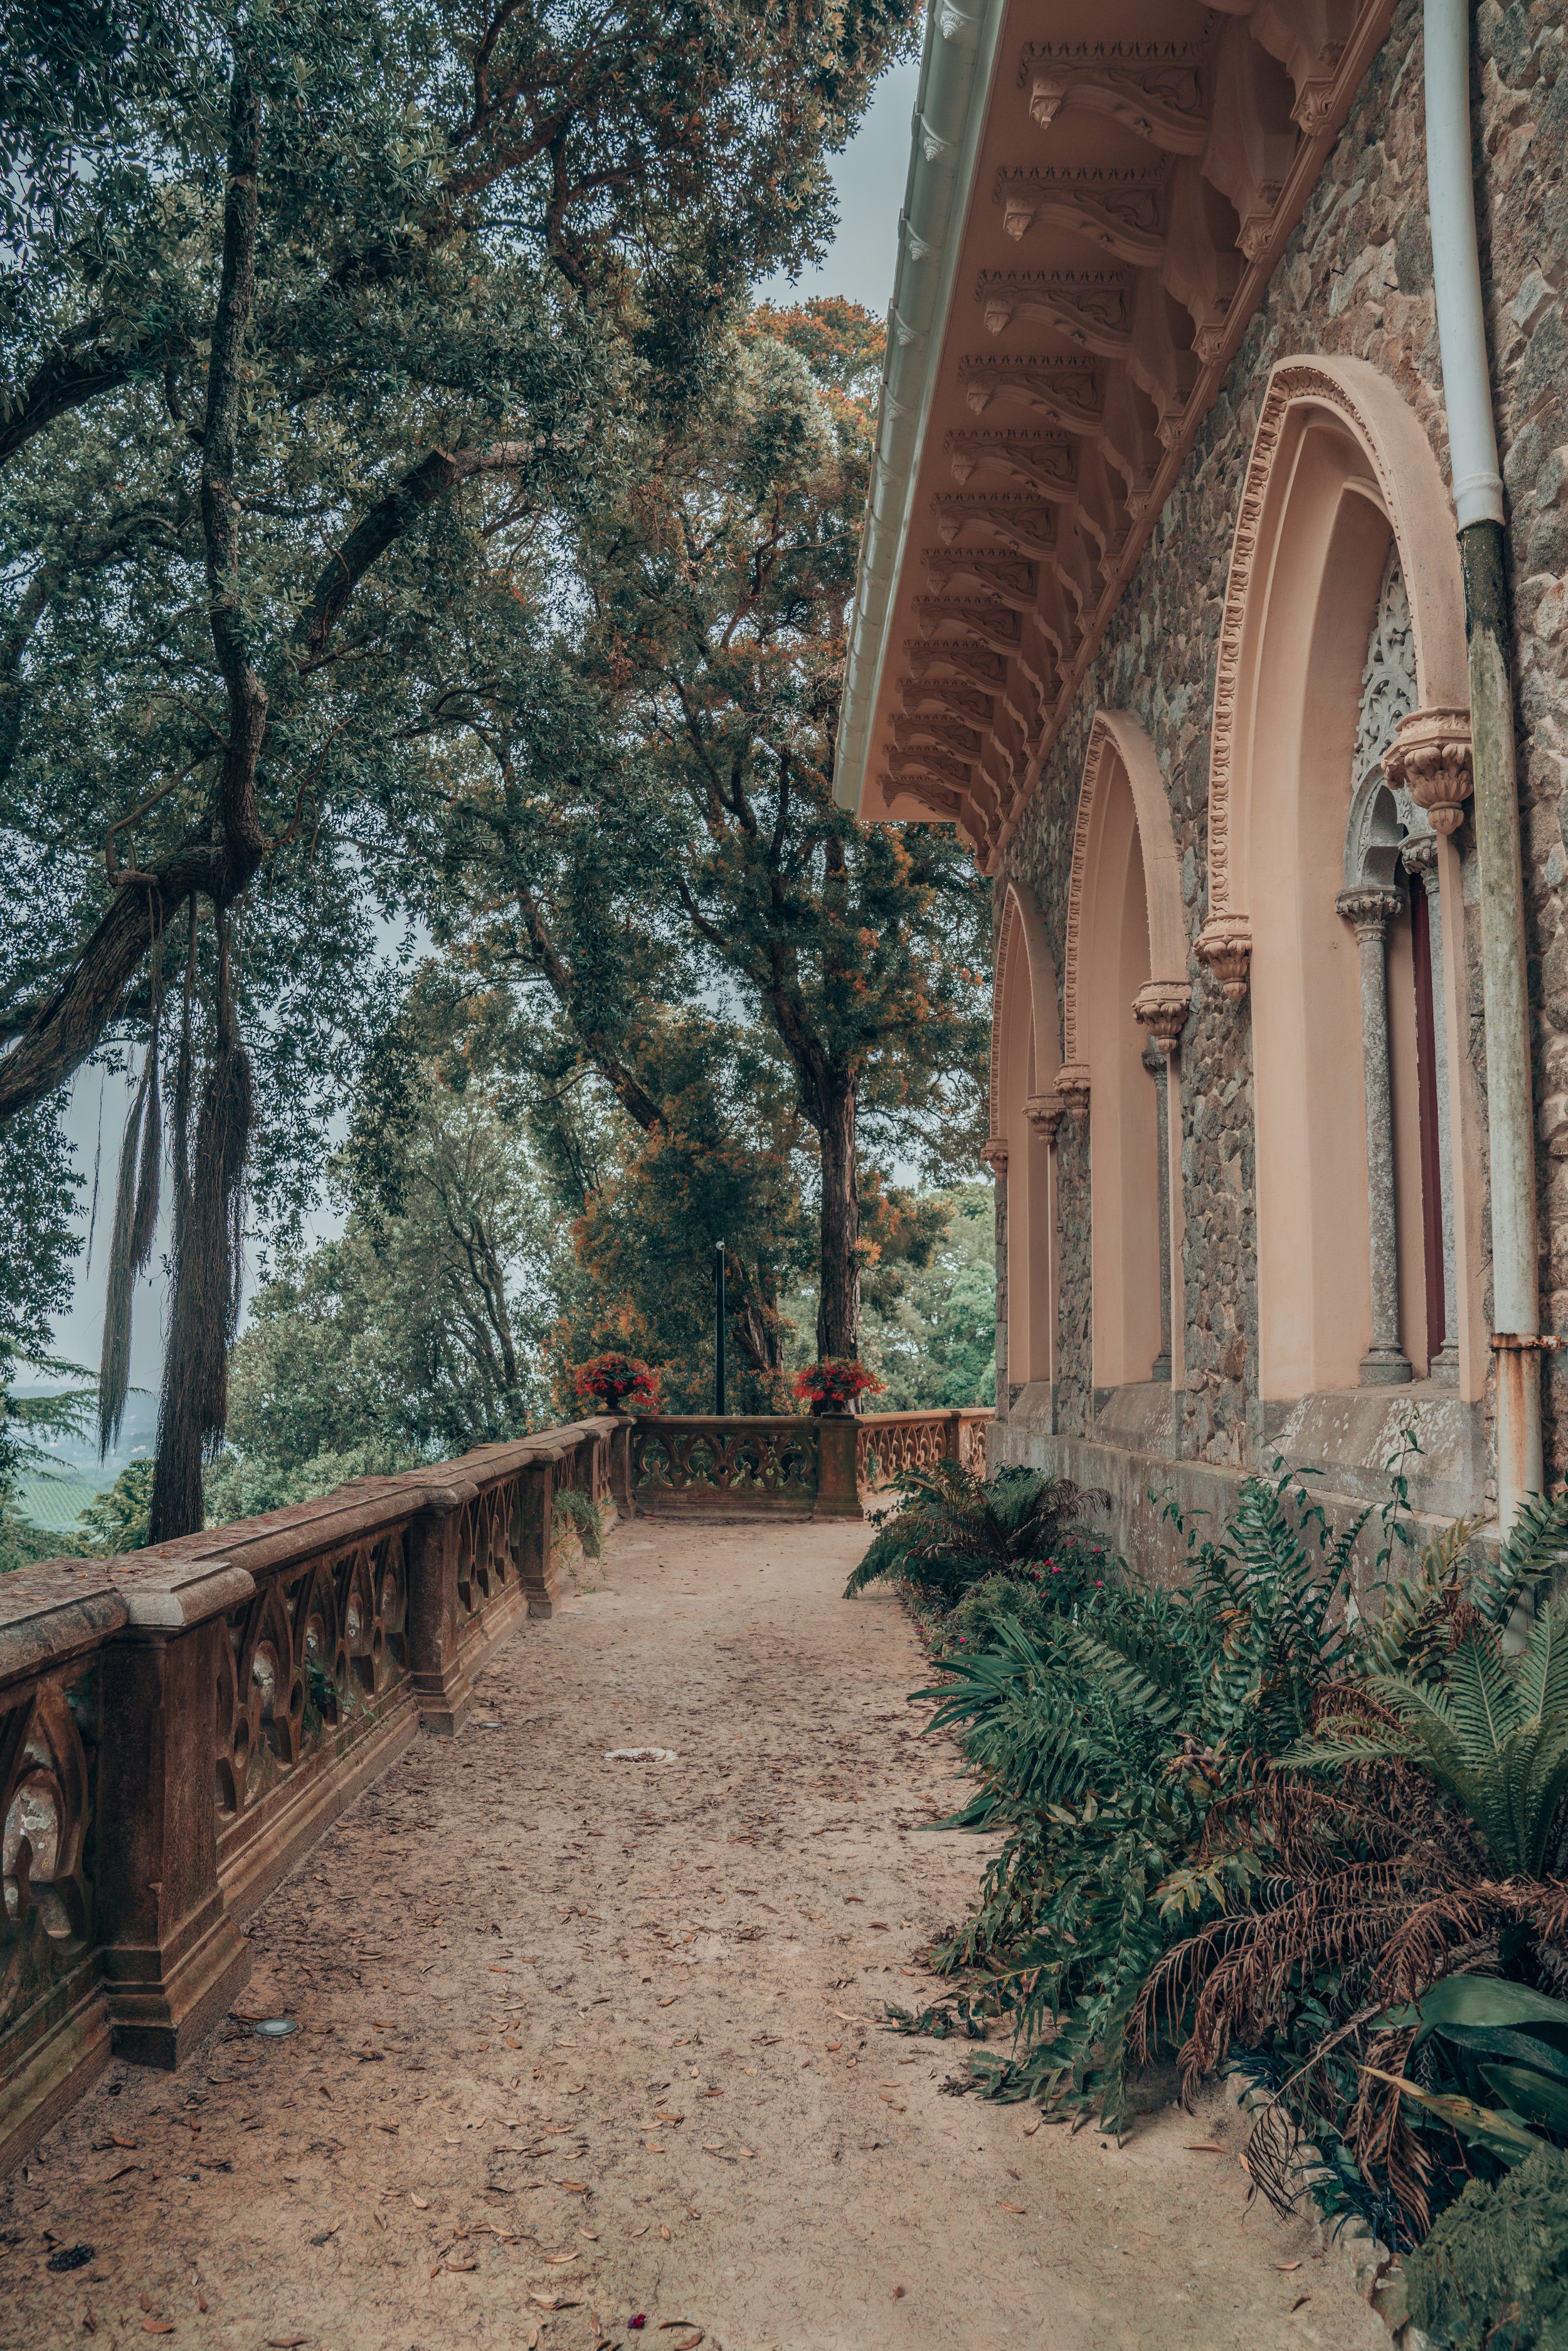 Sintra, Portugal: The Complete Day Trip Guide to Fairytale Castles and More